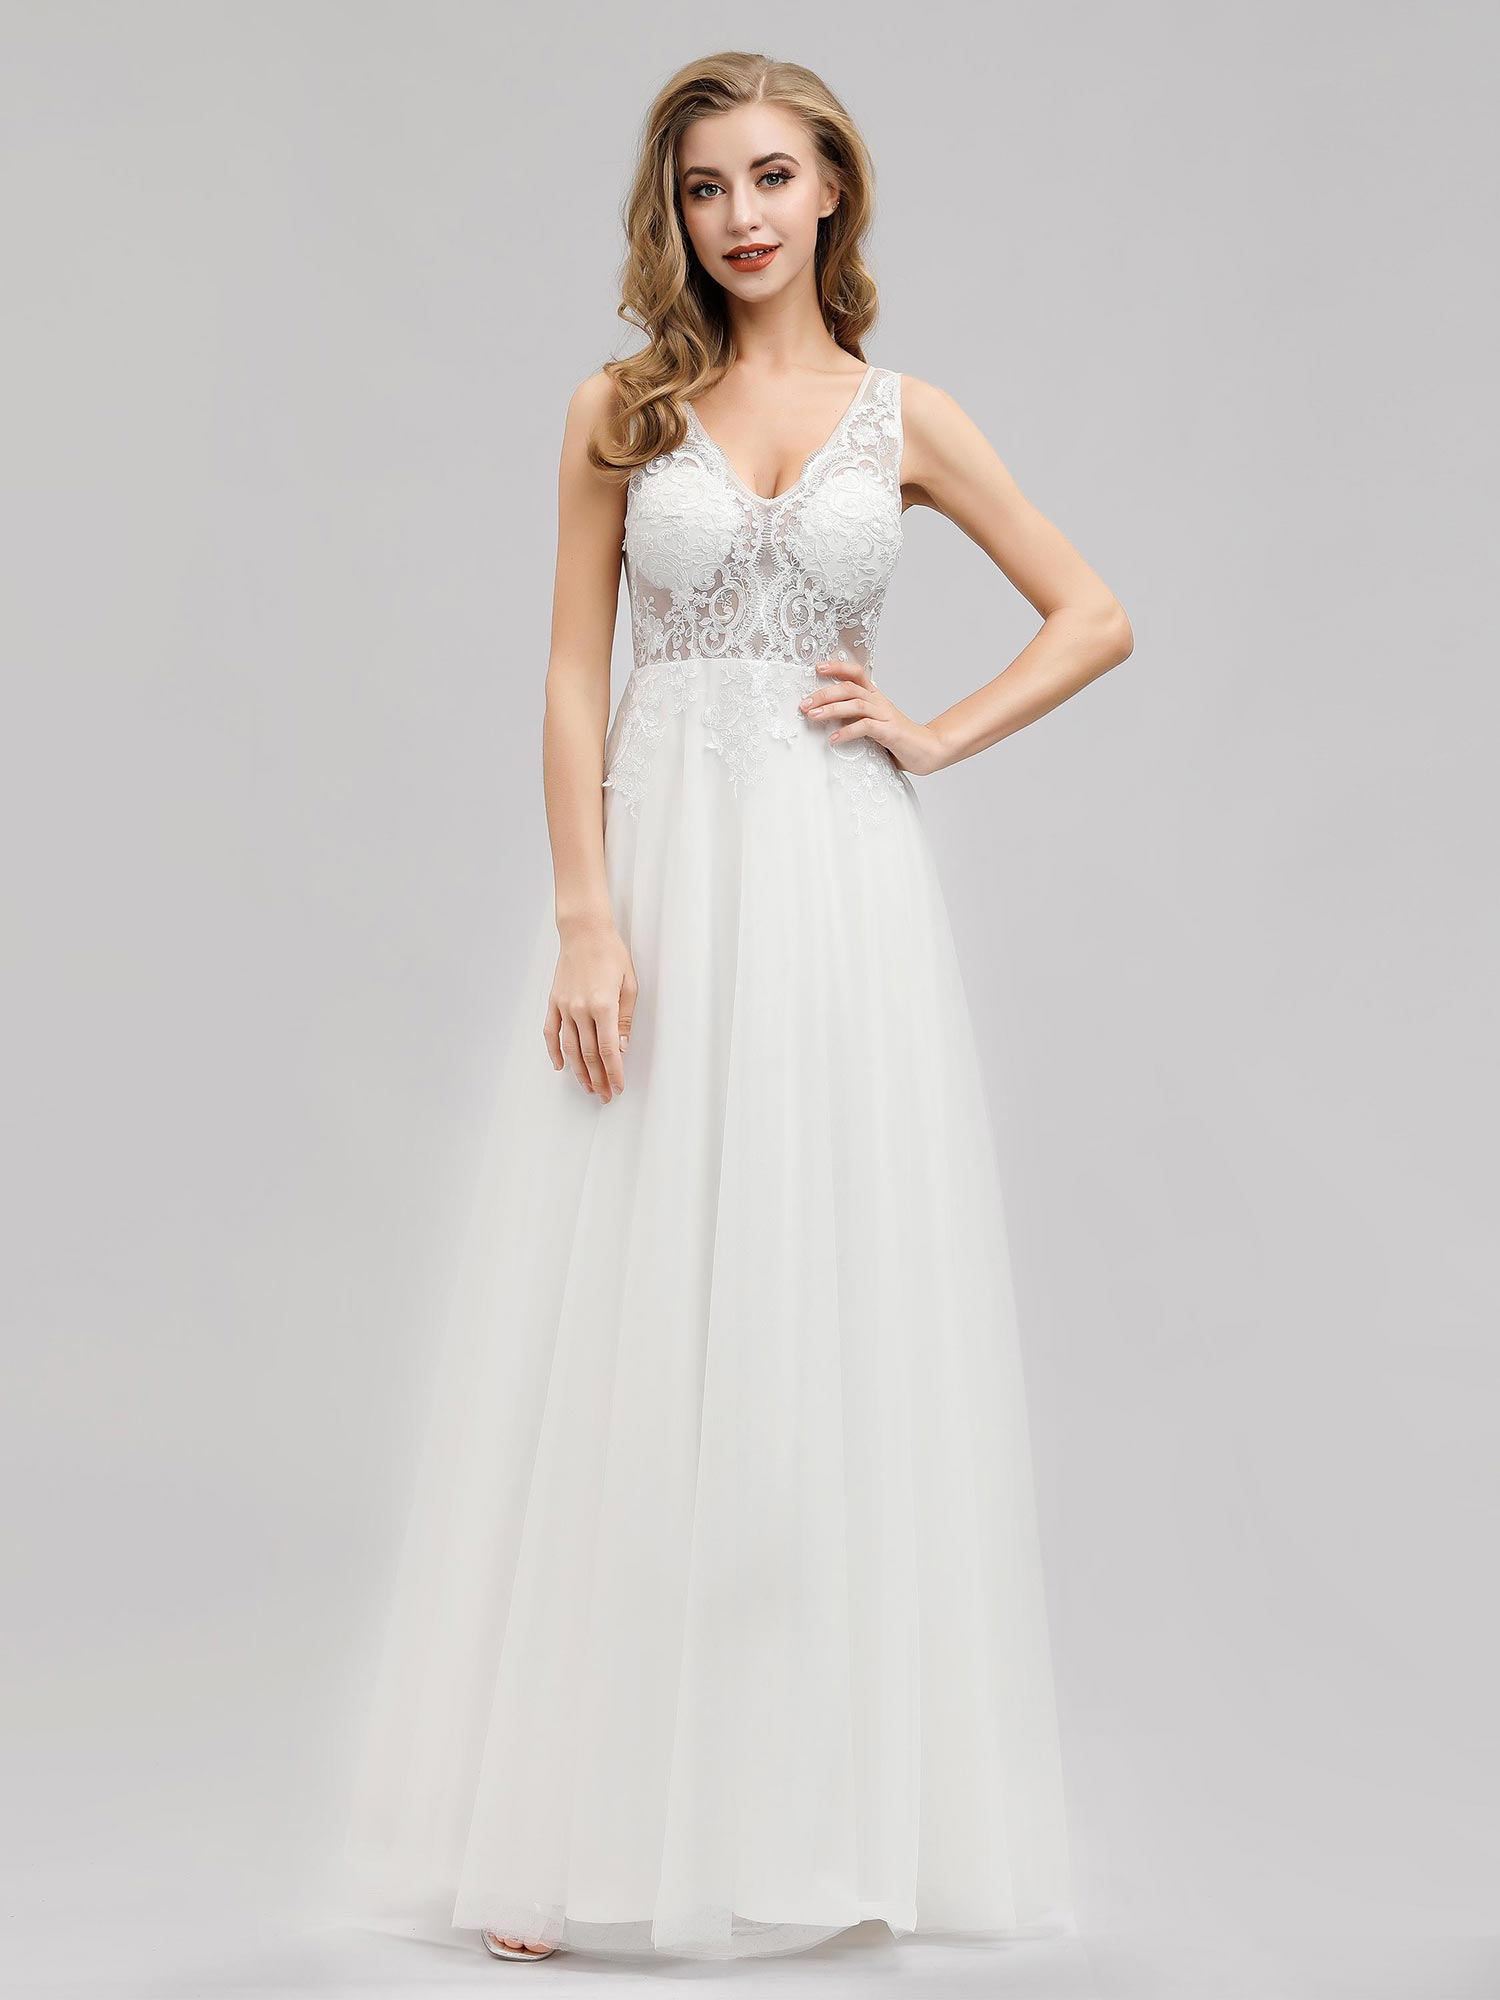 Ever-pretty-Sleeveless-Formal-Lace-Evening-Party-Dress-Cocktail-Homecoming-Prom thumbnail 6